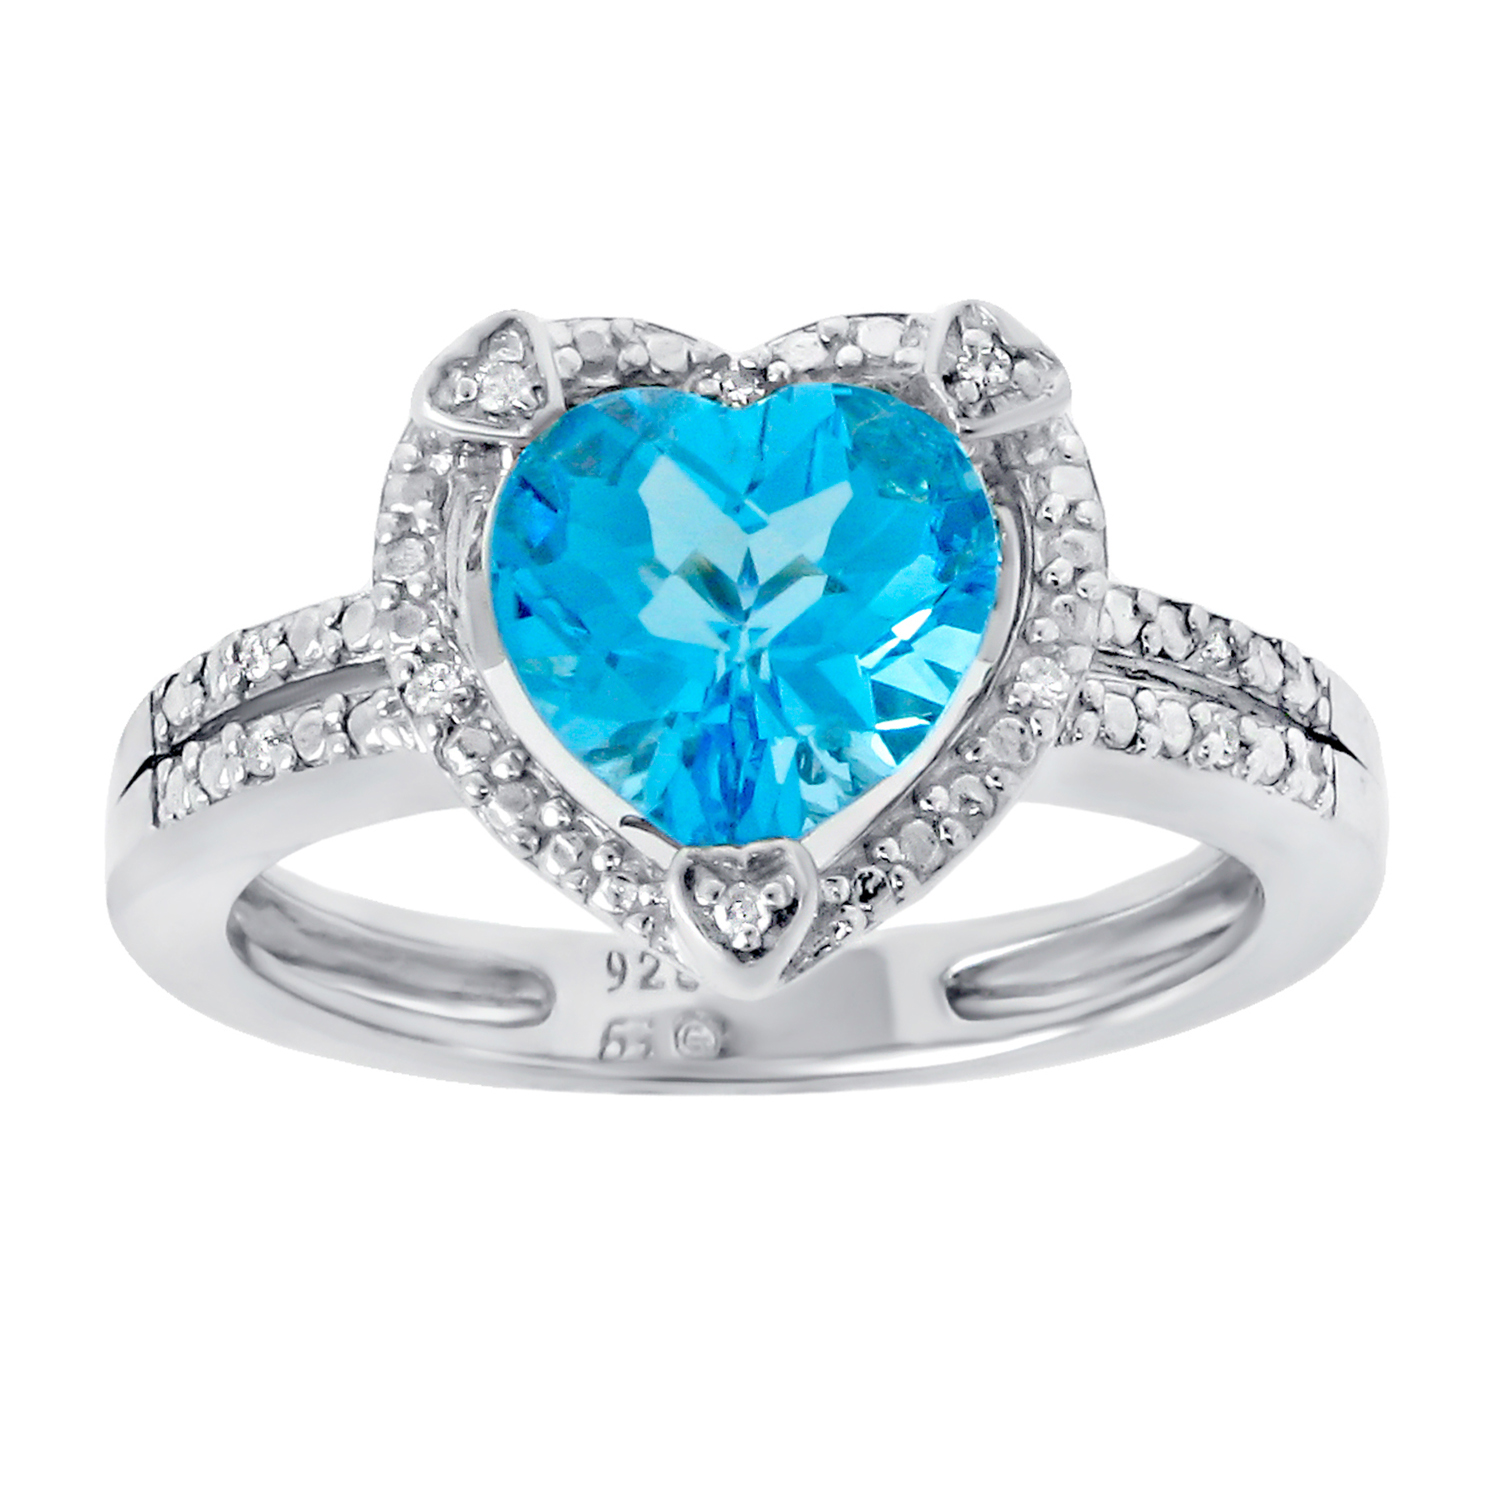 2.20 Ct Heart Natural Blue Topaz Diamond Accent 925 Sterling Silver Ring